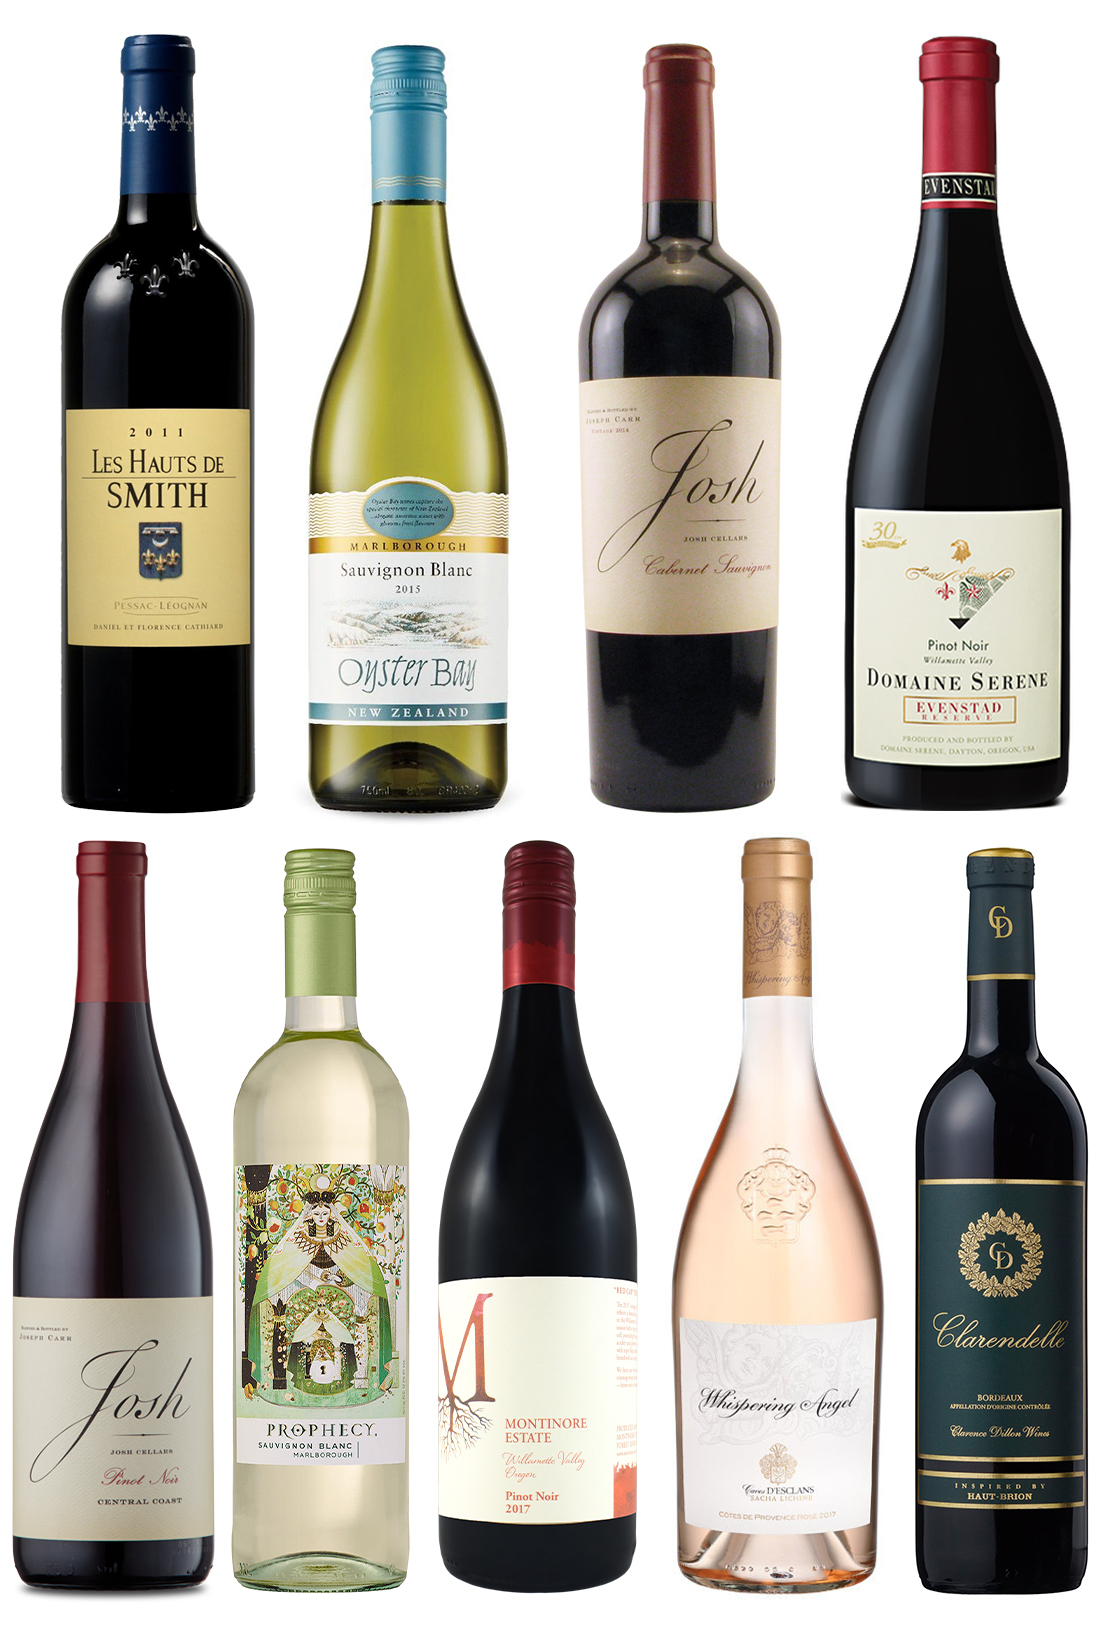 My Favorite Wines